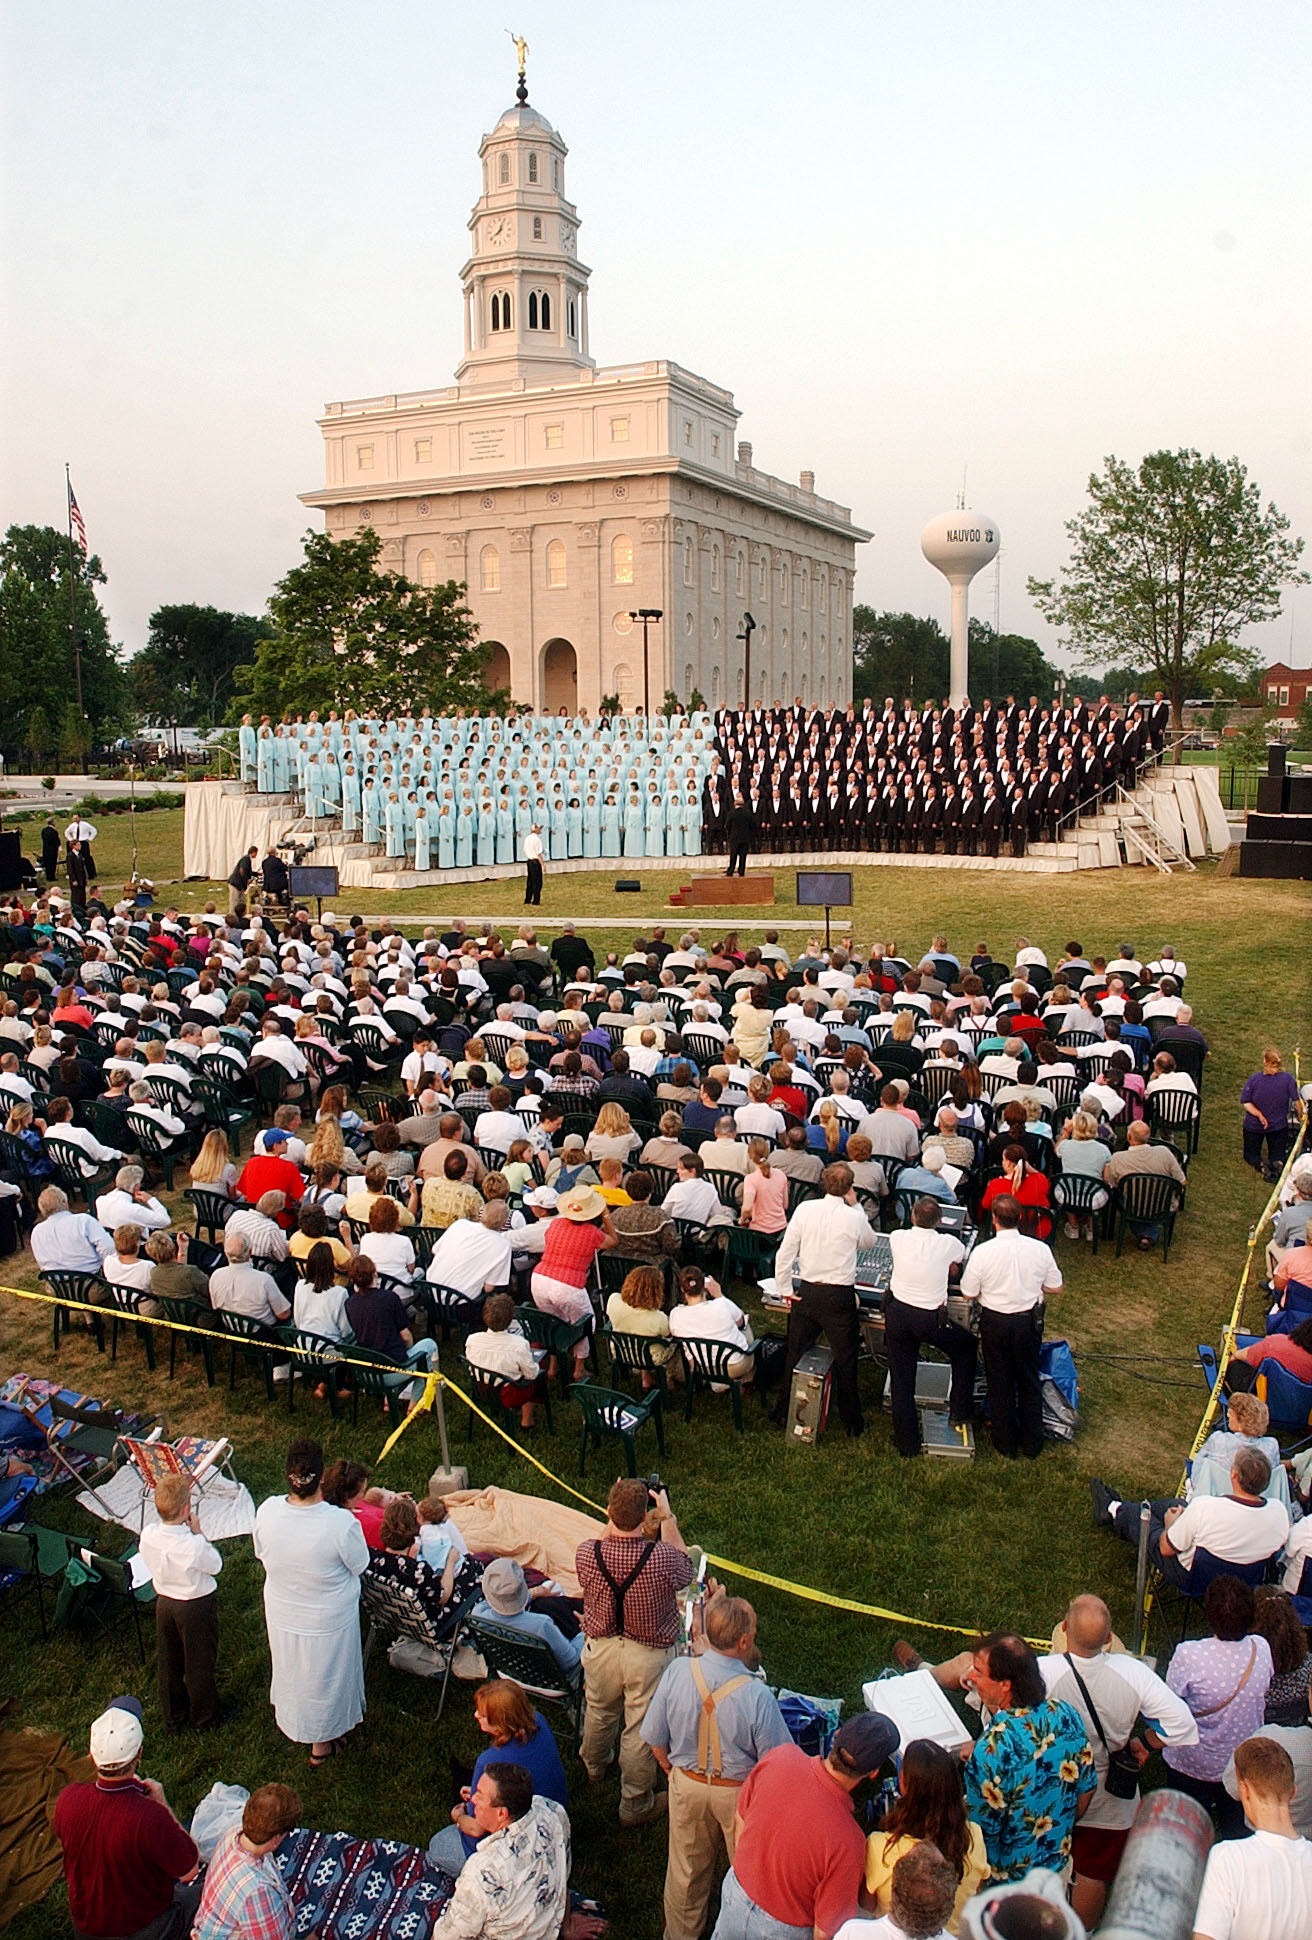 The Mormon Tabernacle Choir performs in front of the Nauvoo LDS Temple June 29th, 2002.